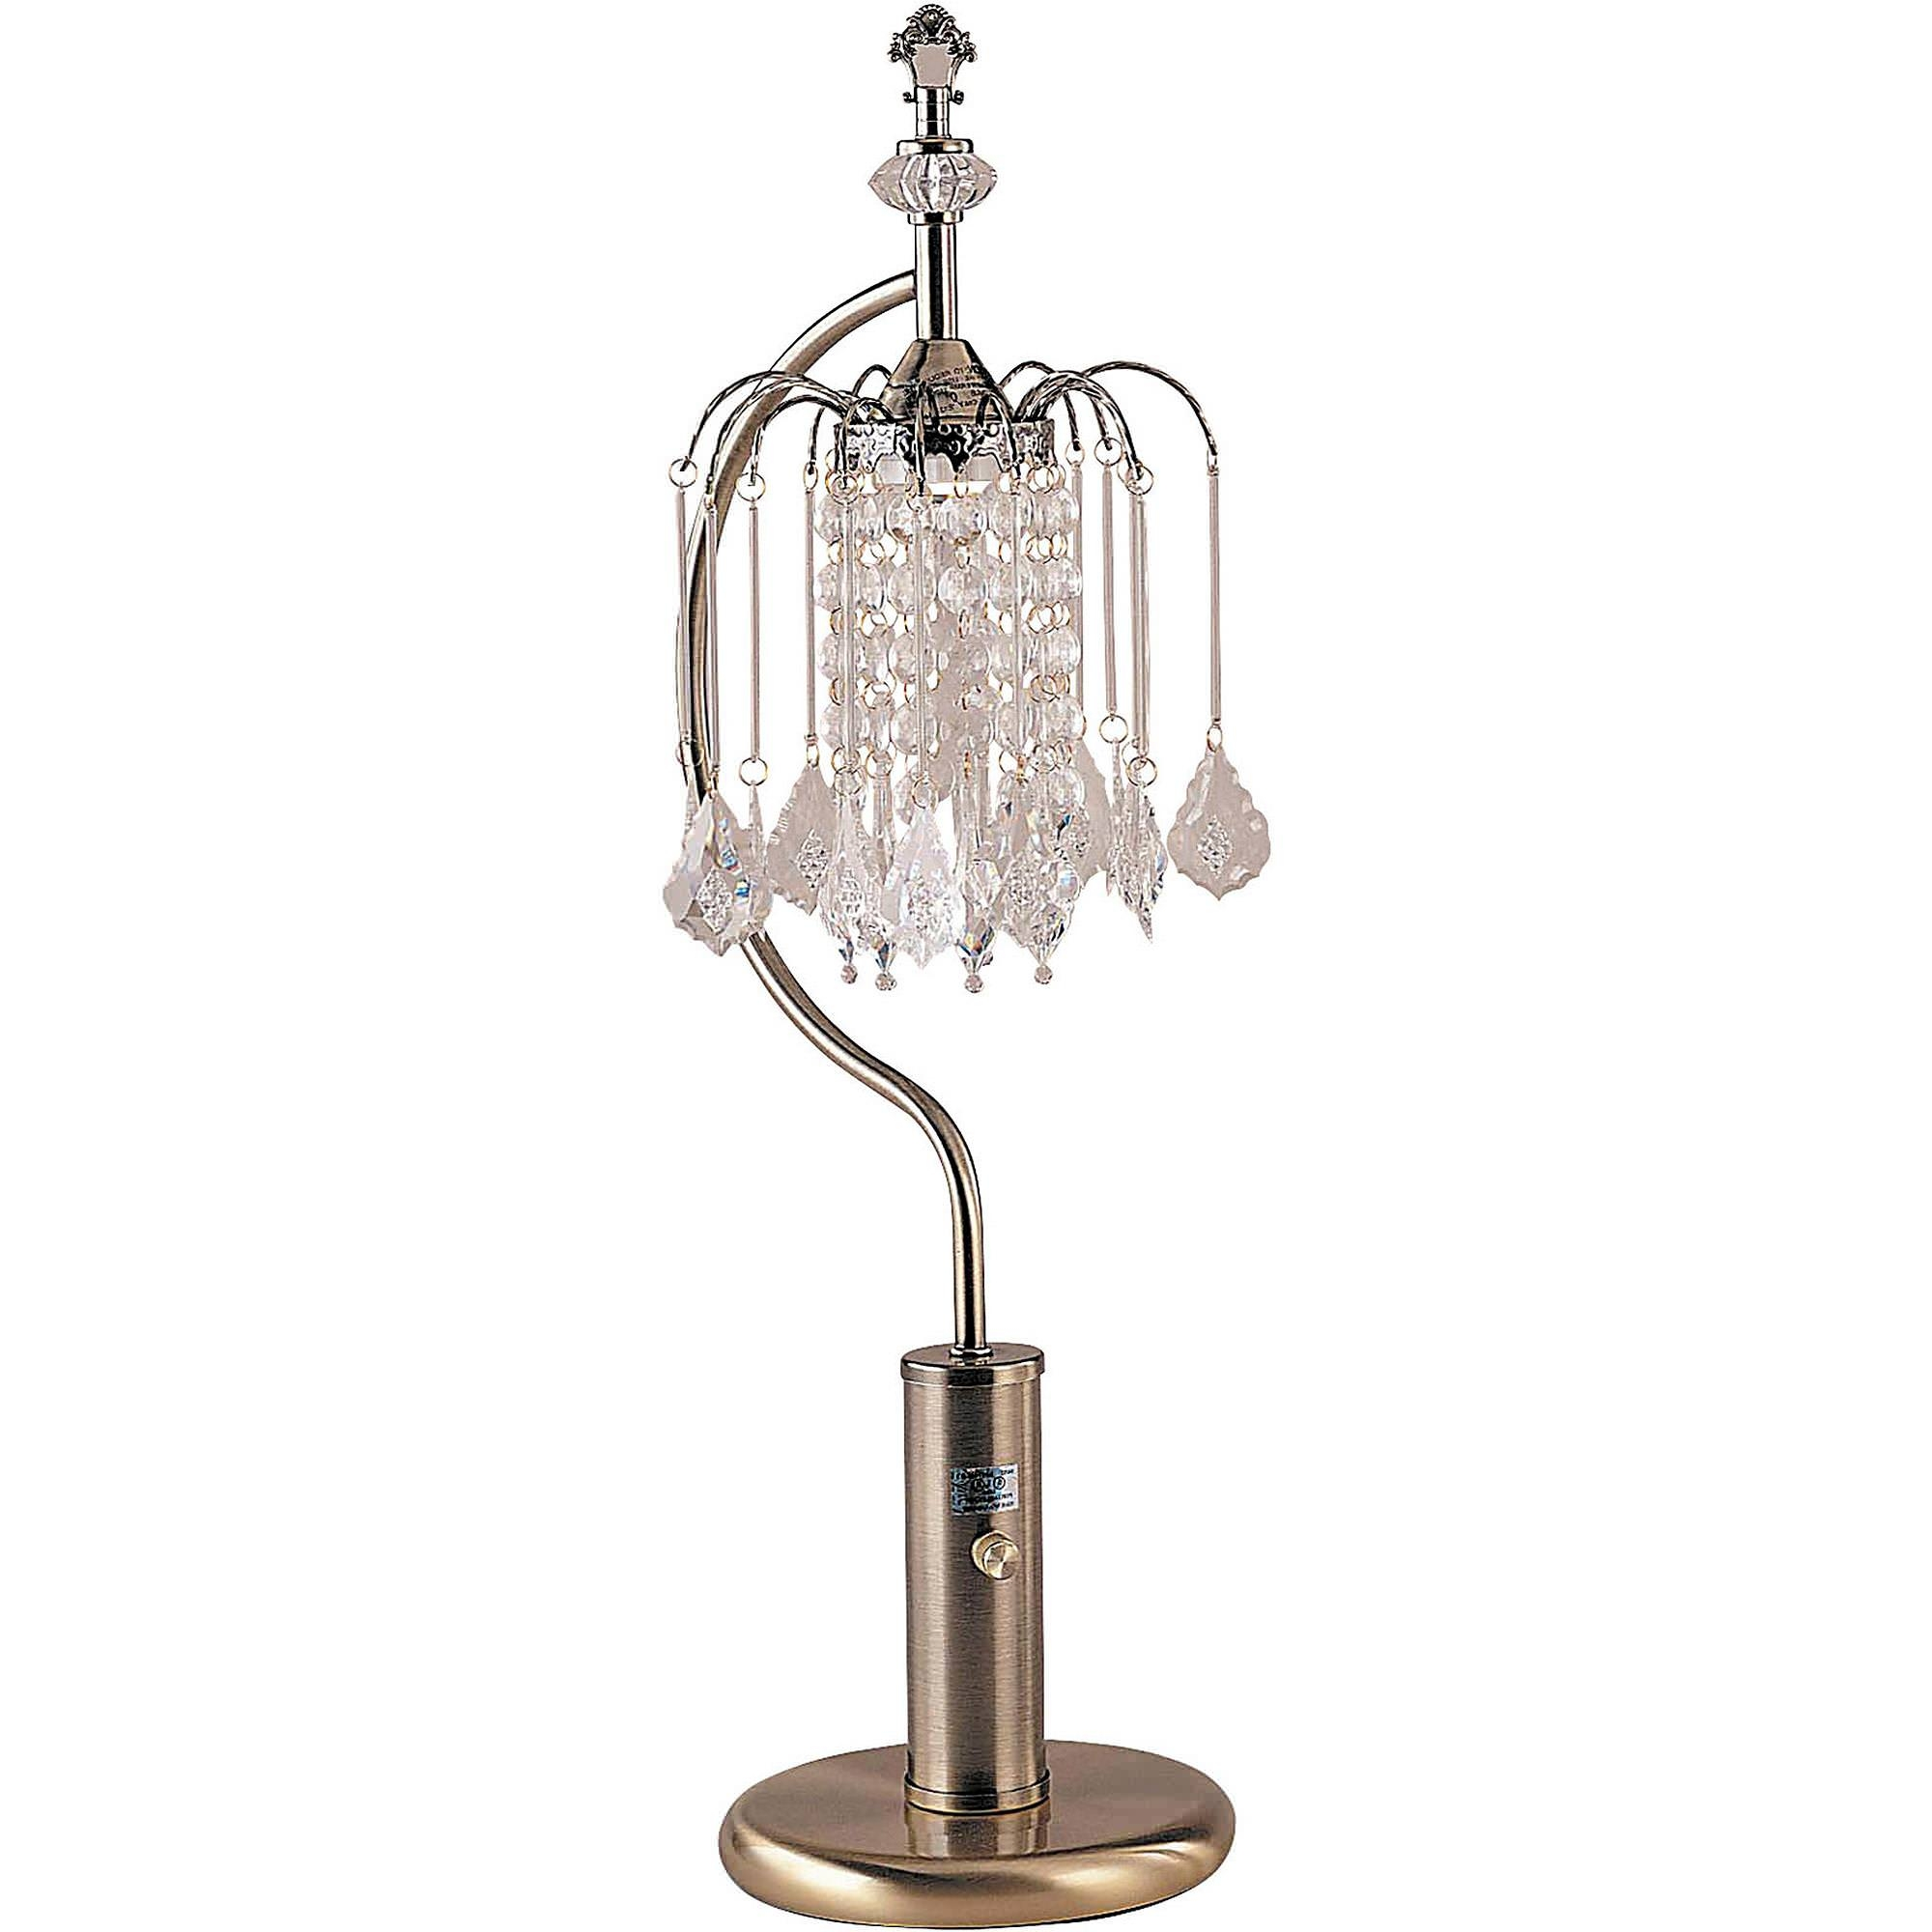 Black Table Lamp Chandelier Madison Brightech Floor Lamp With Within Table Chandeliers (Image 3 of 15)